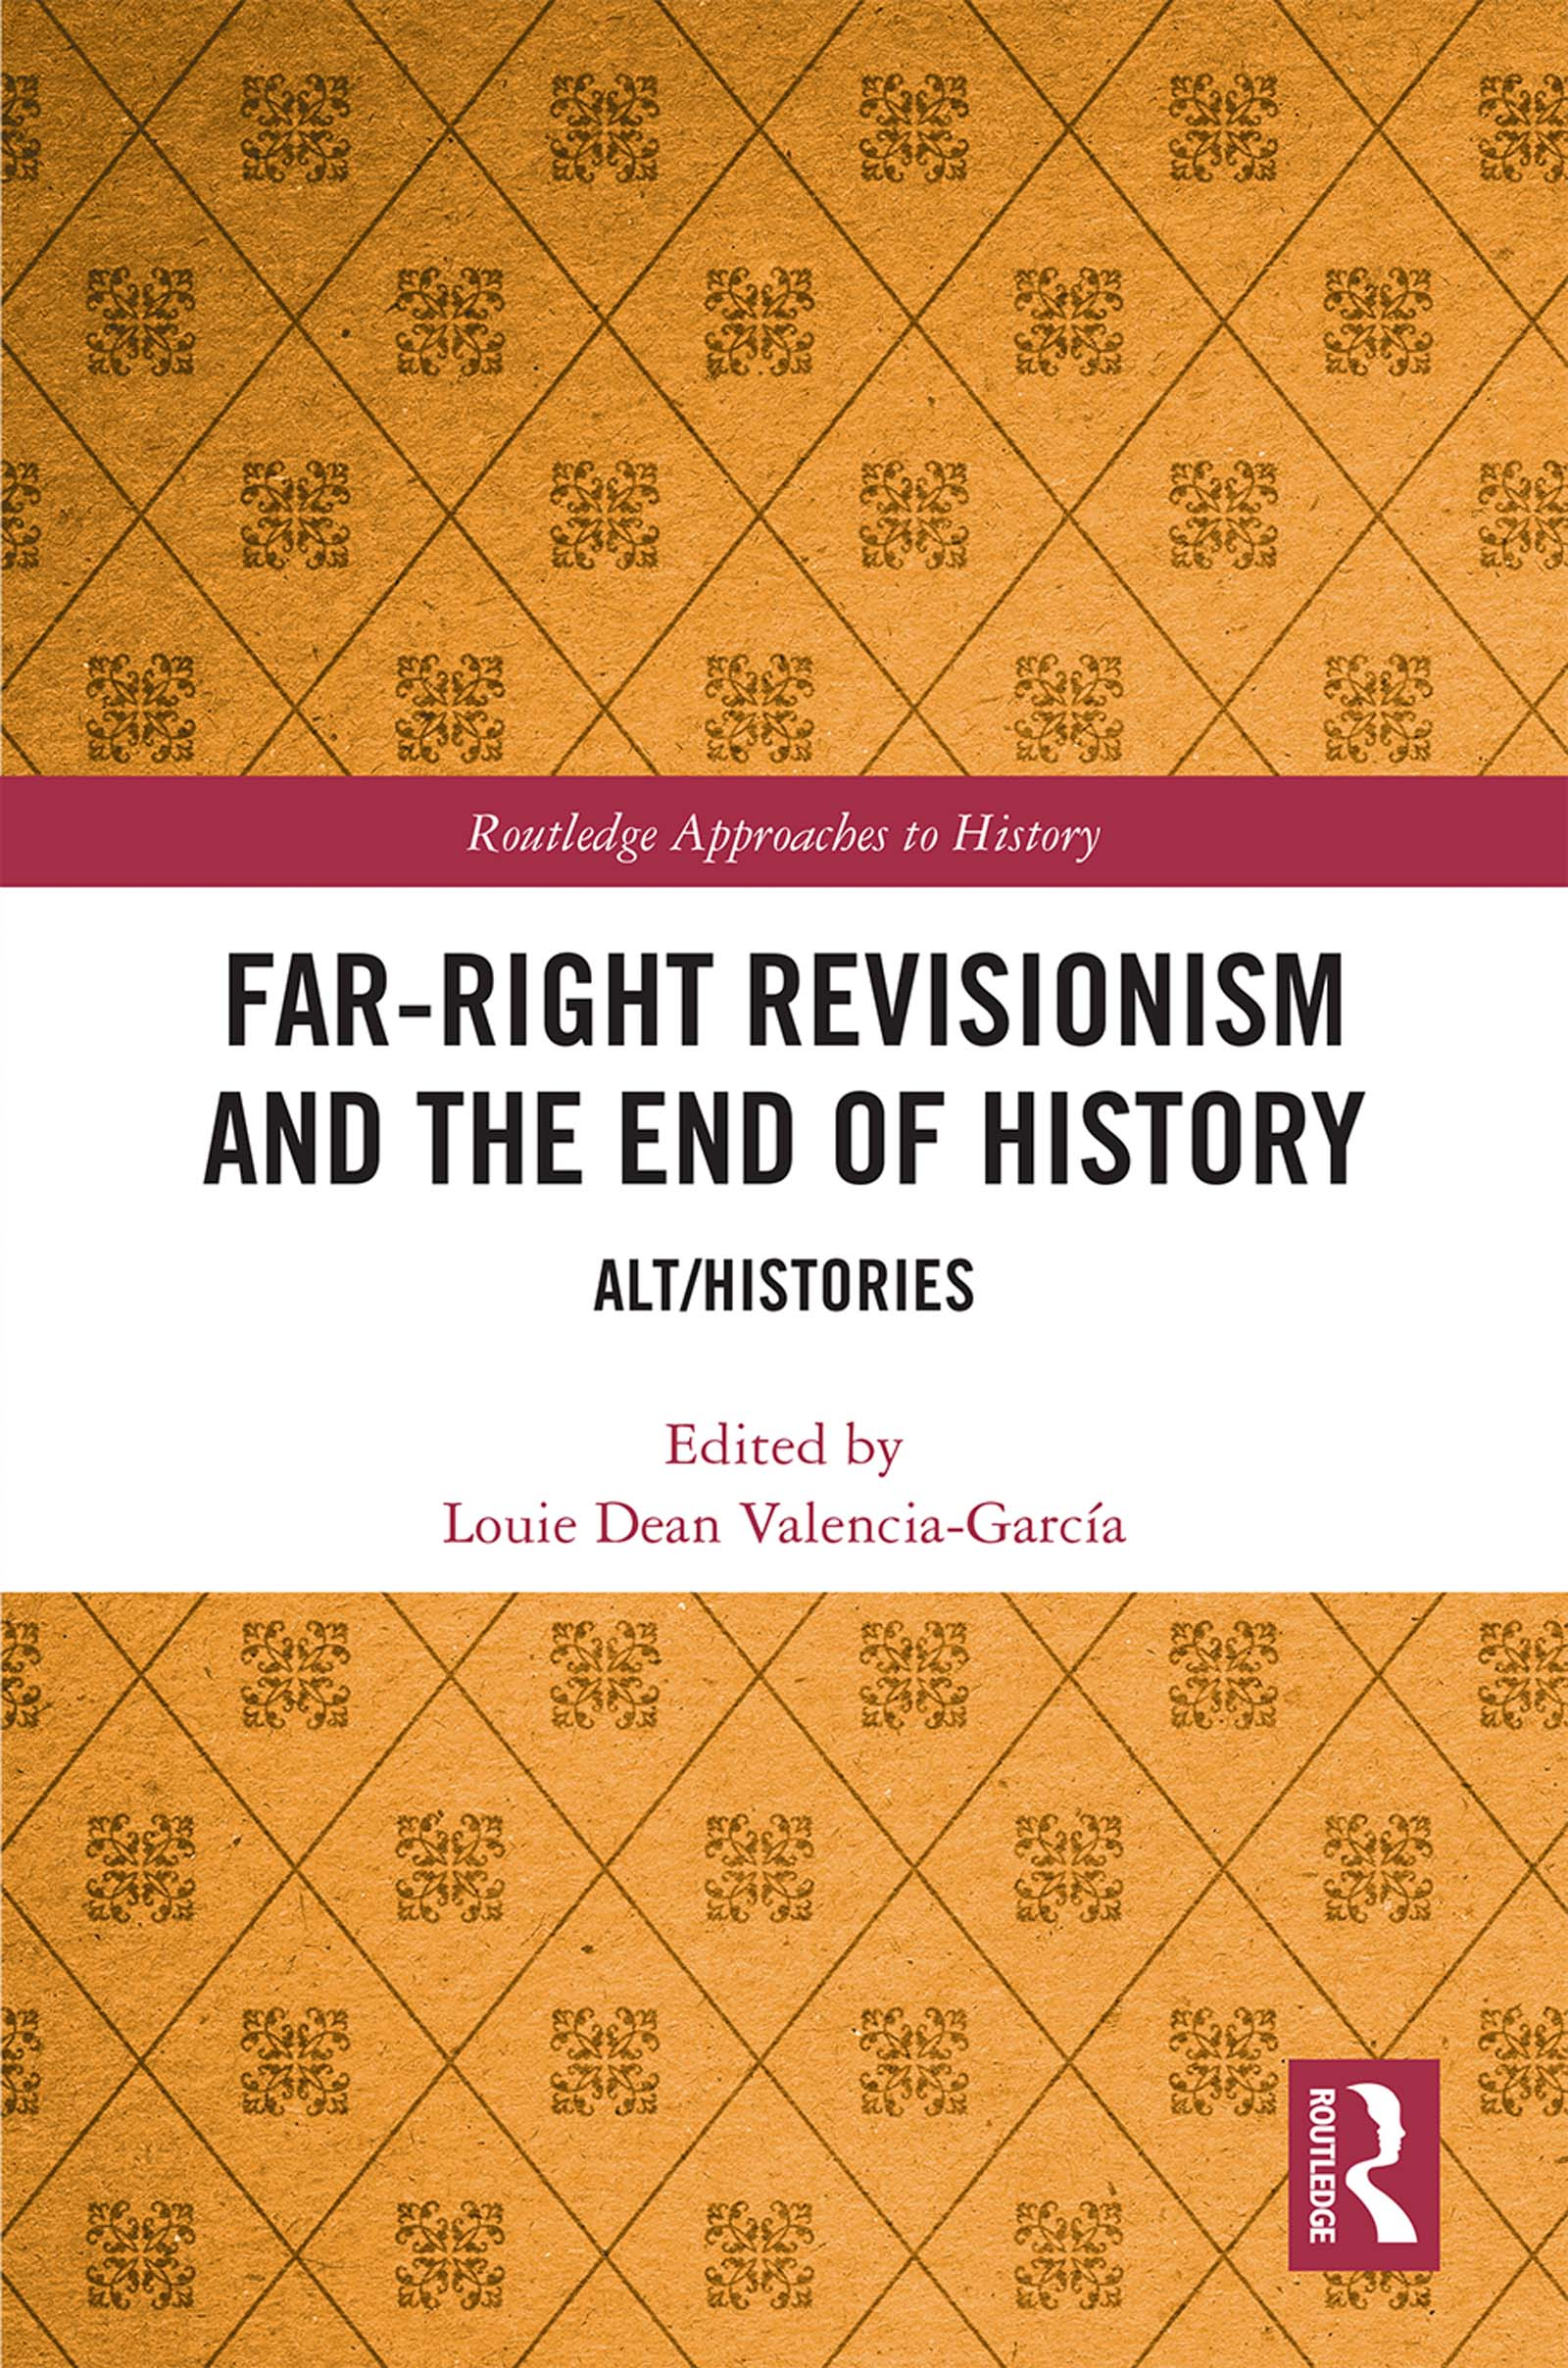 Far-Right Revisionism and the End of History: Alt/Histories book cover